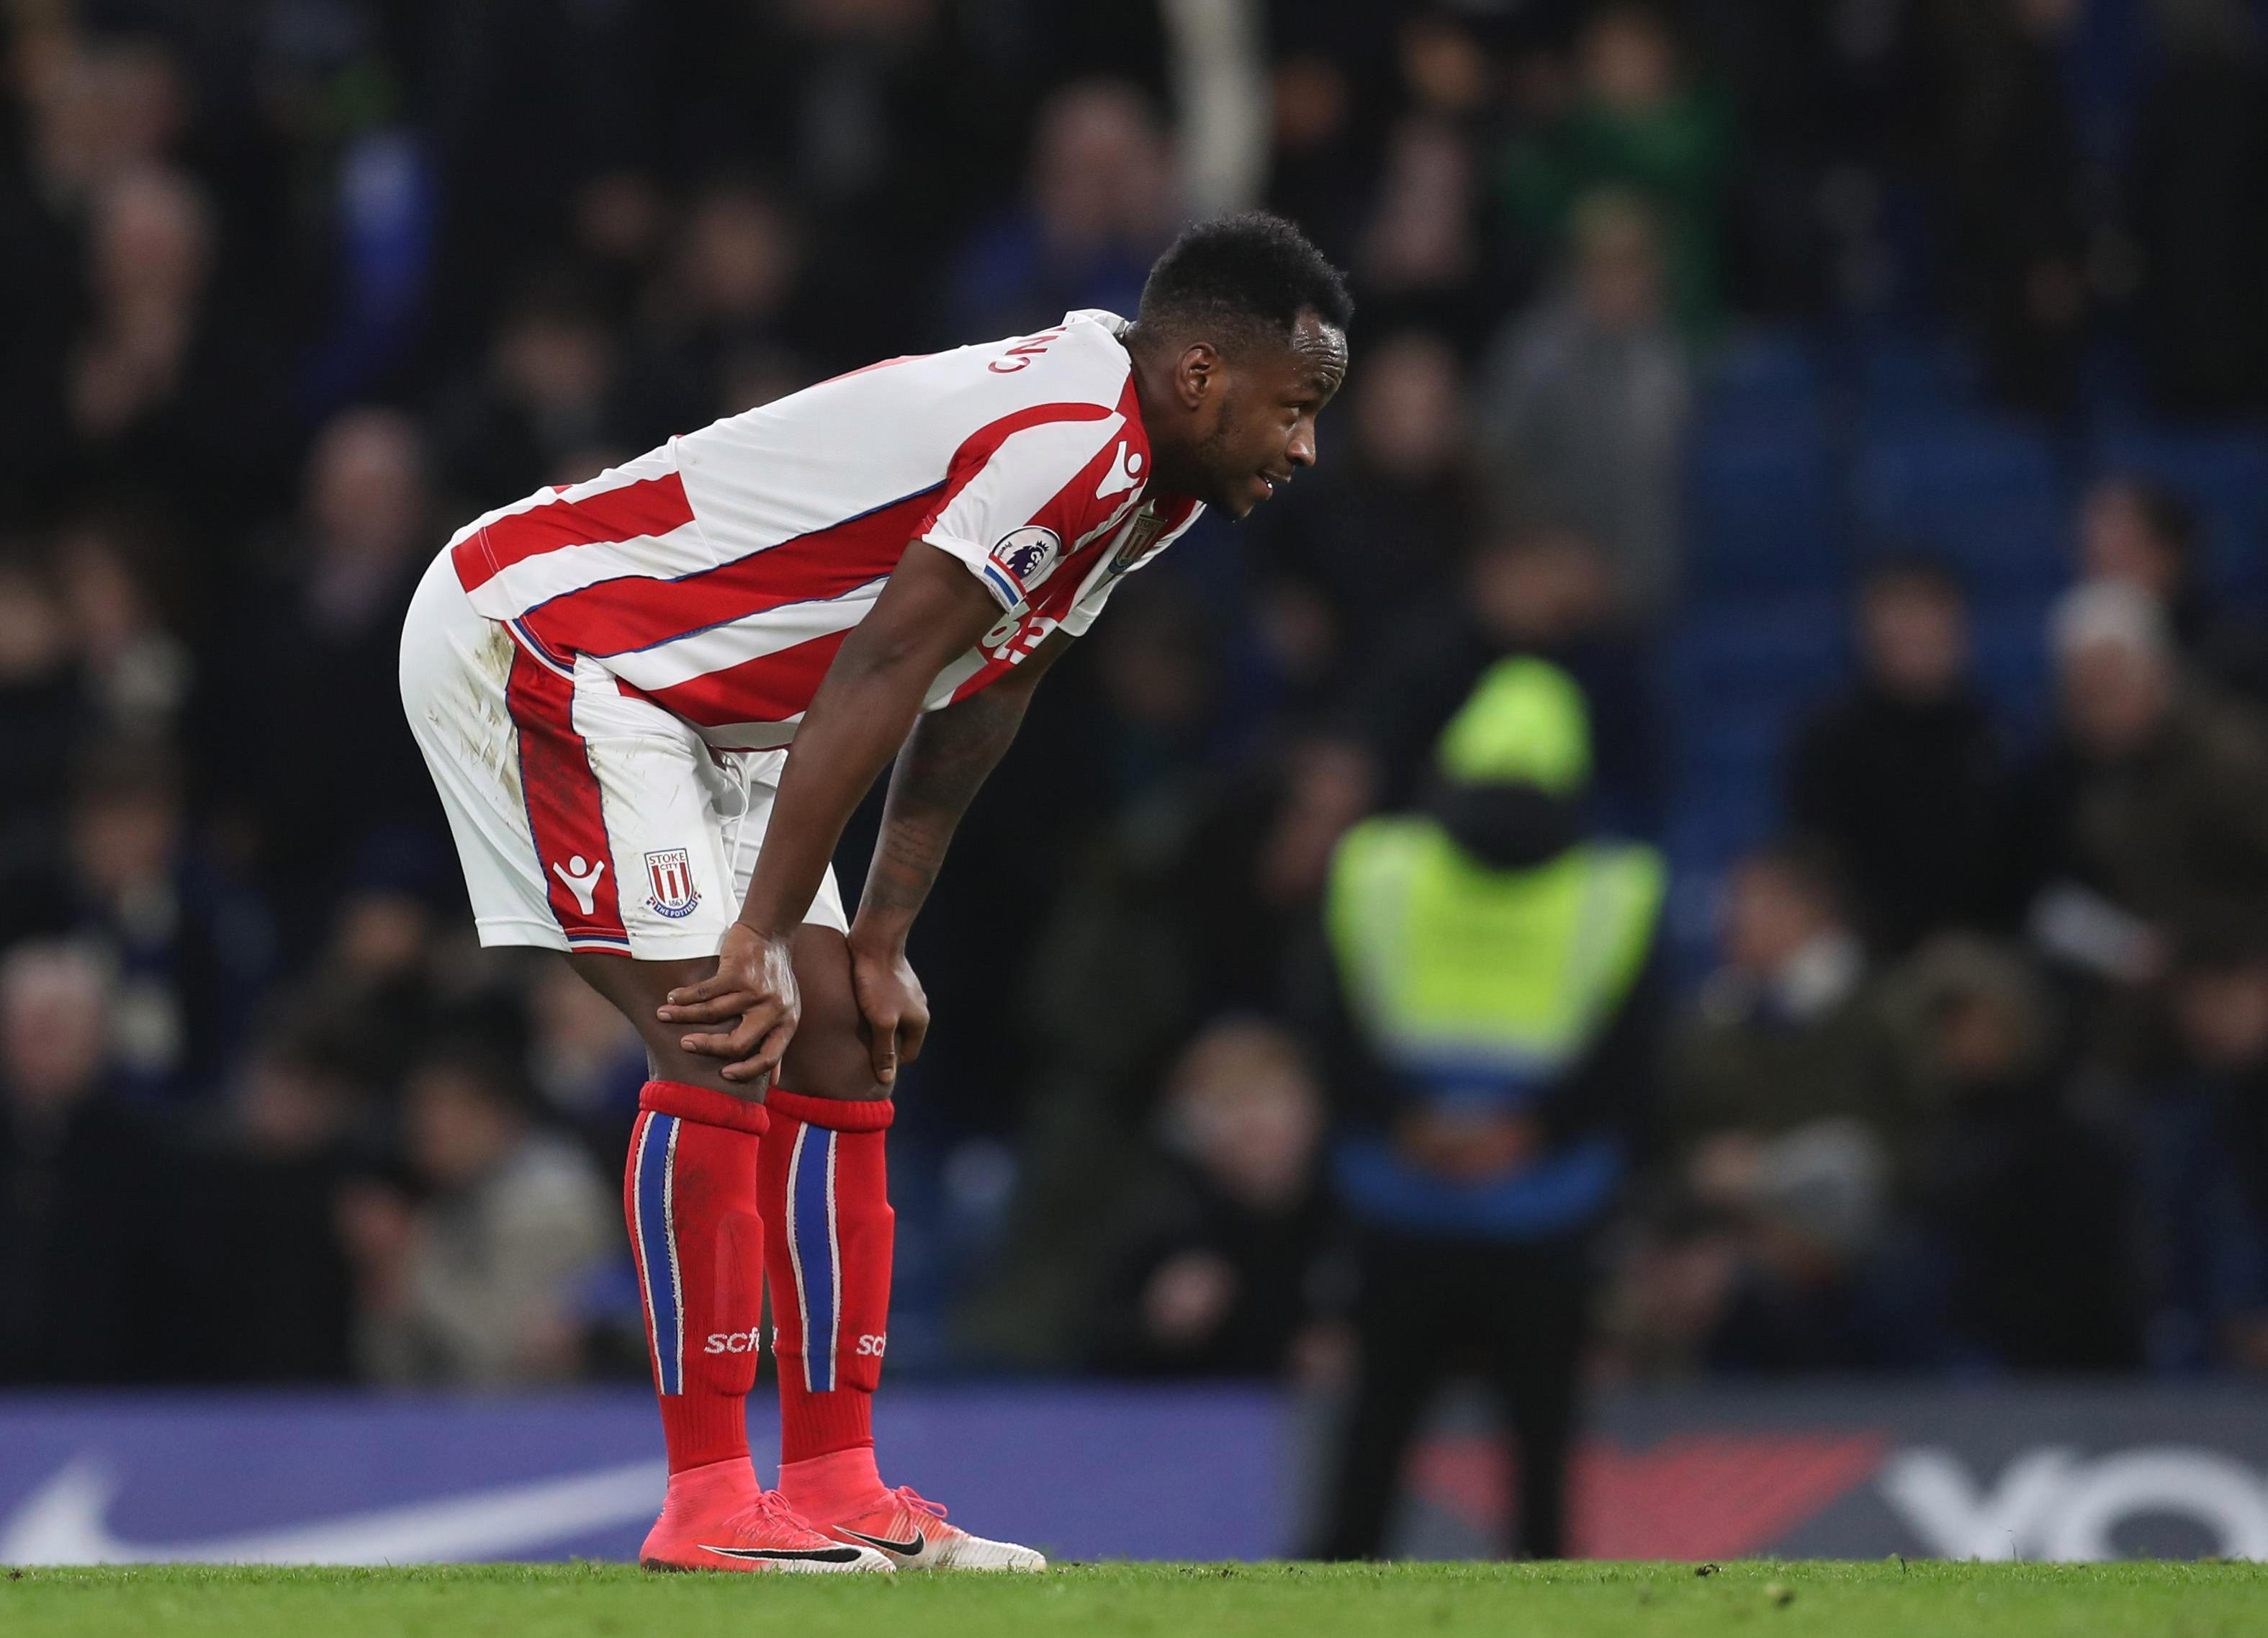 Berahino has forgotten what it feels like to score